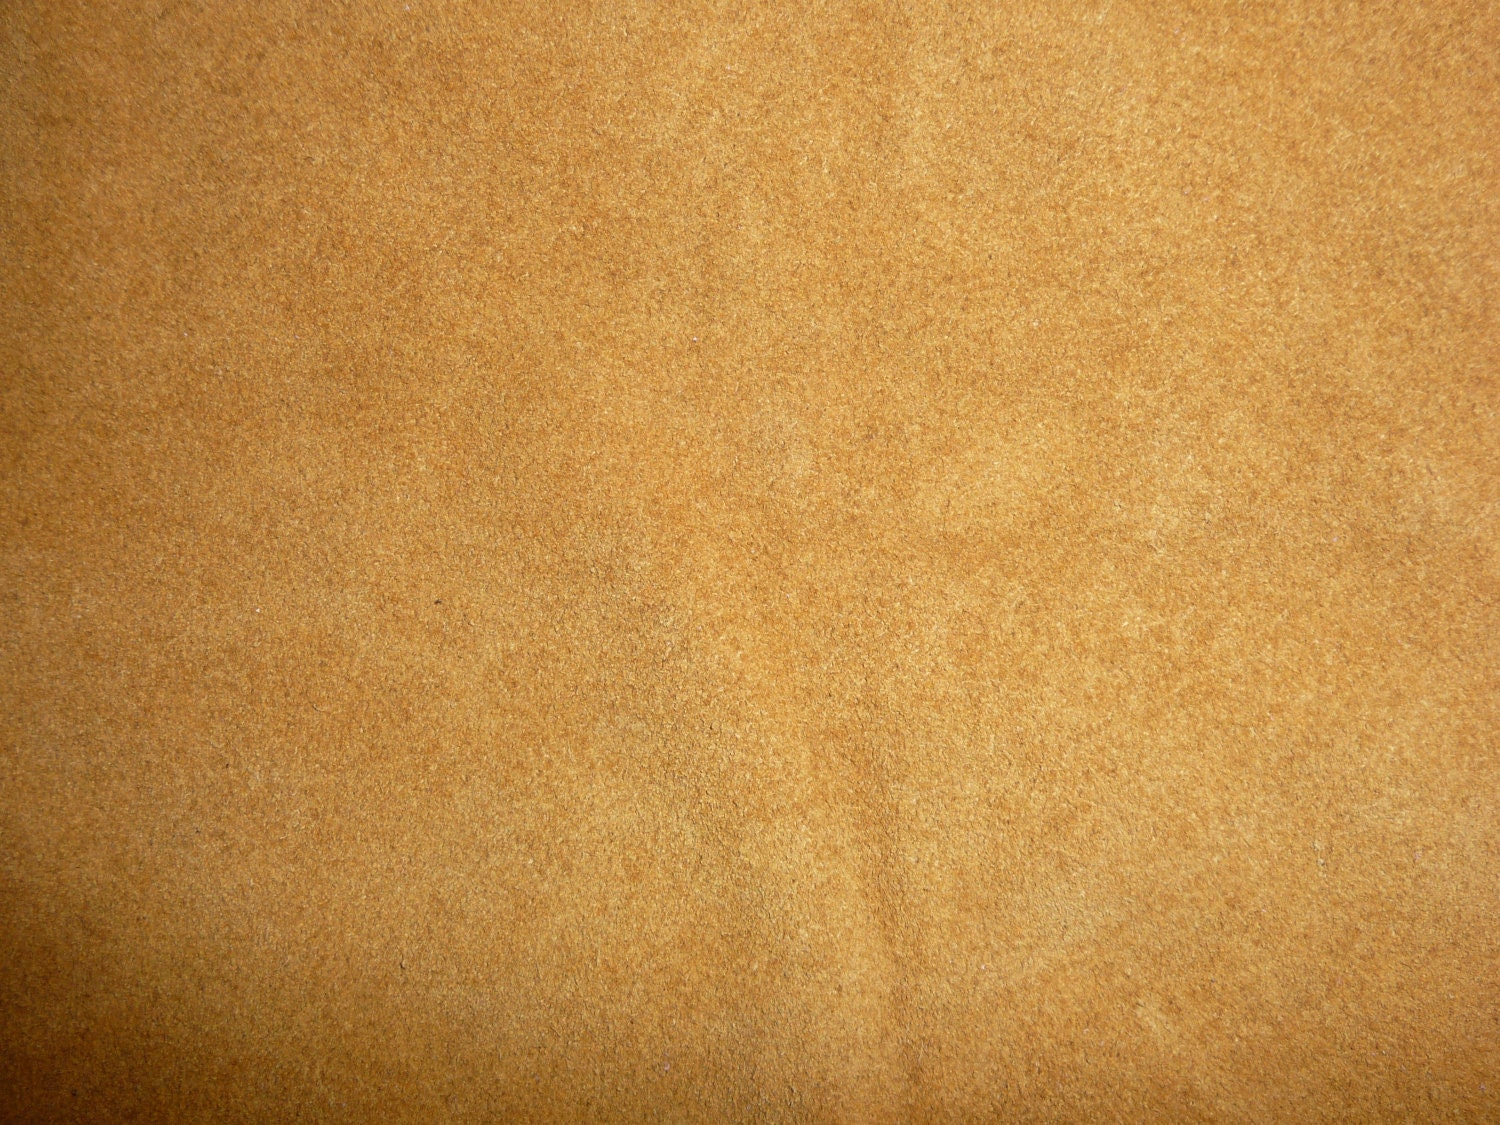 Soft Gray Nice Tan Very Light Brown Suede Like Leather By Peggysuealso